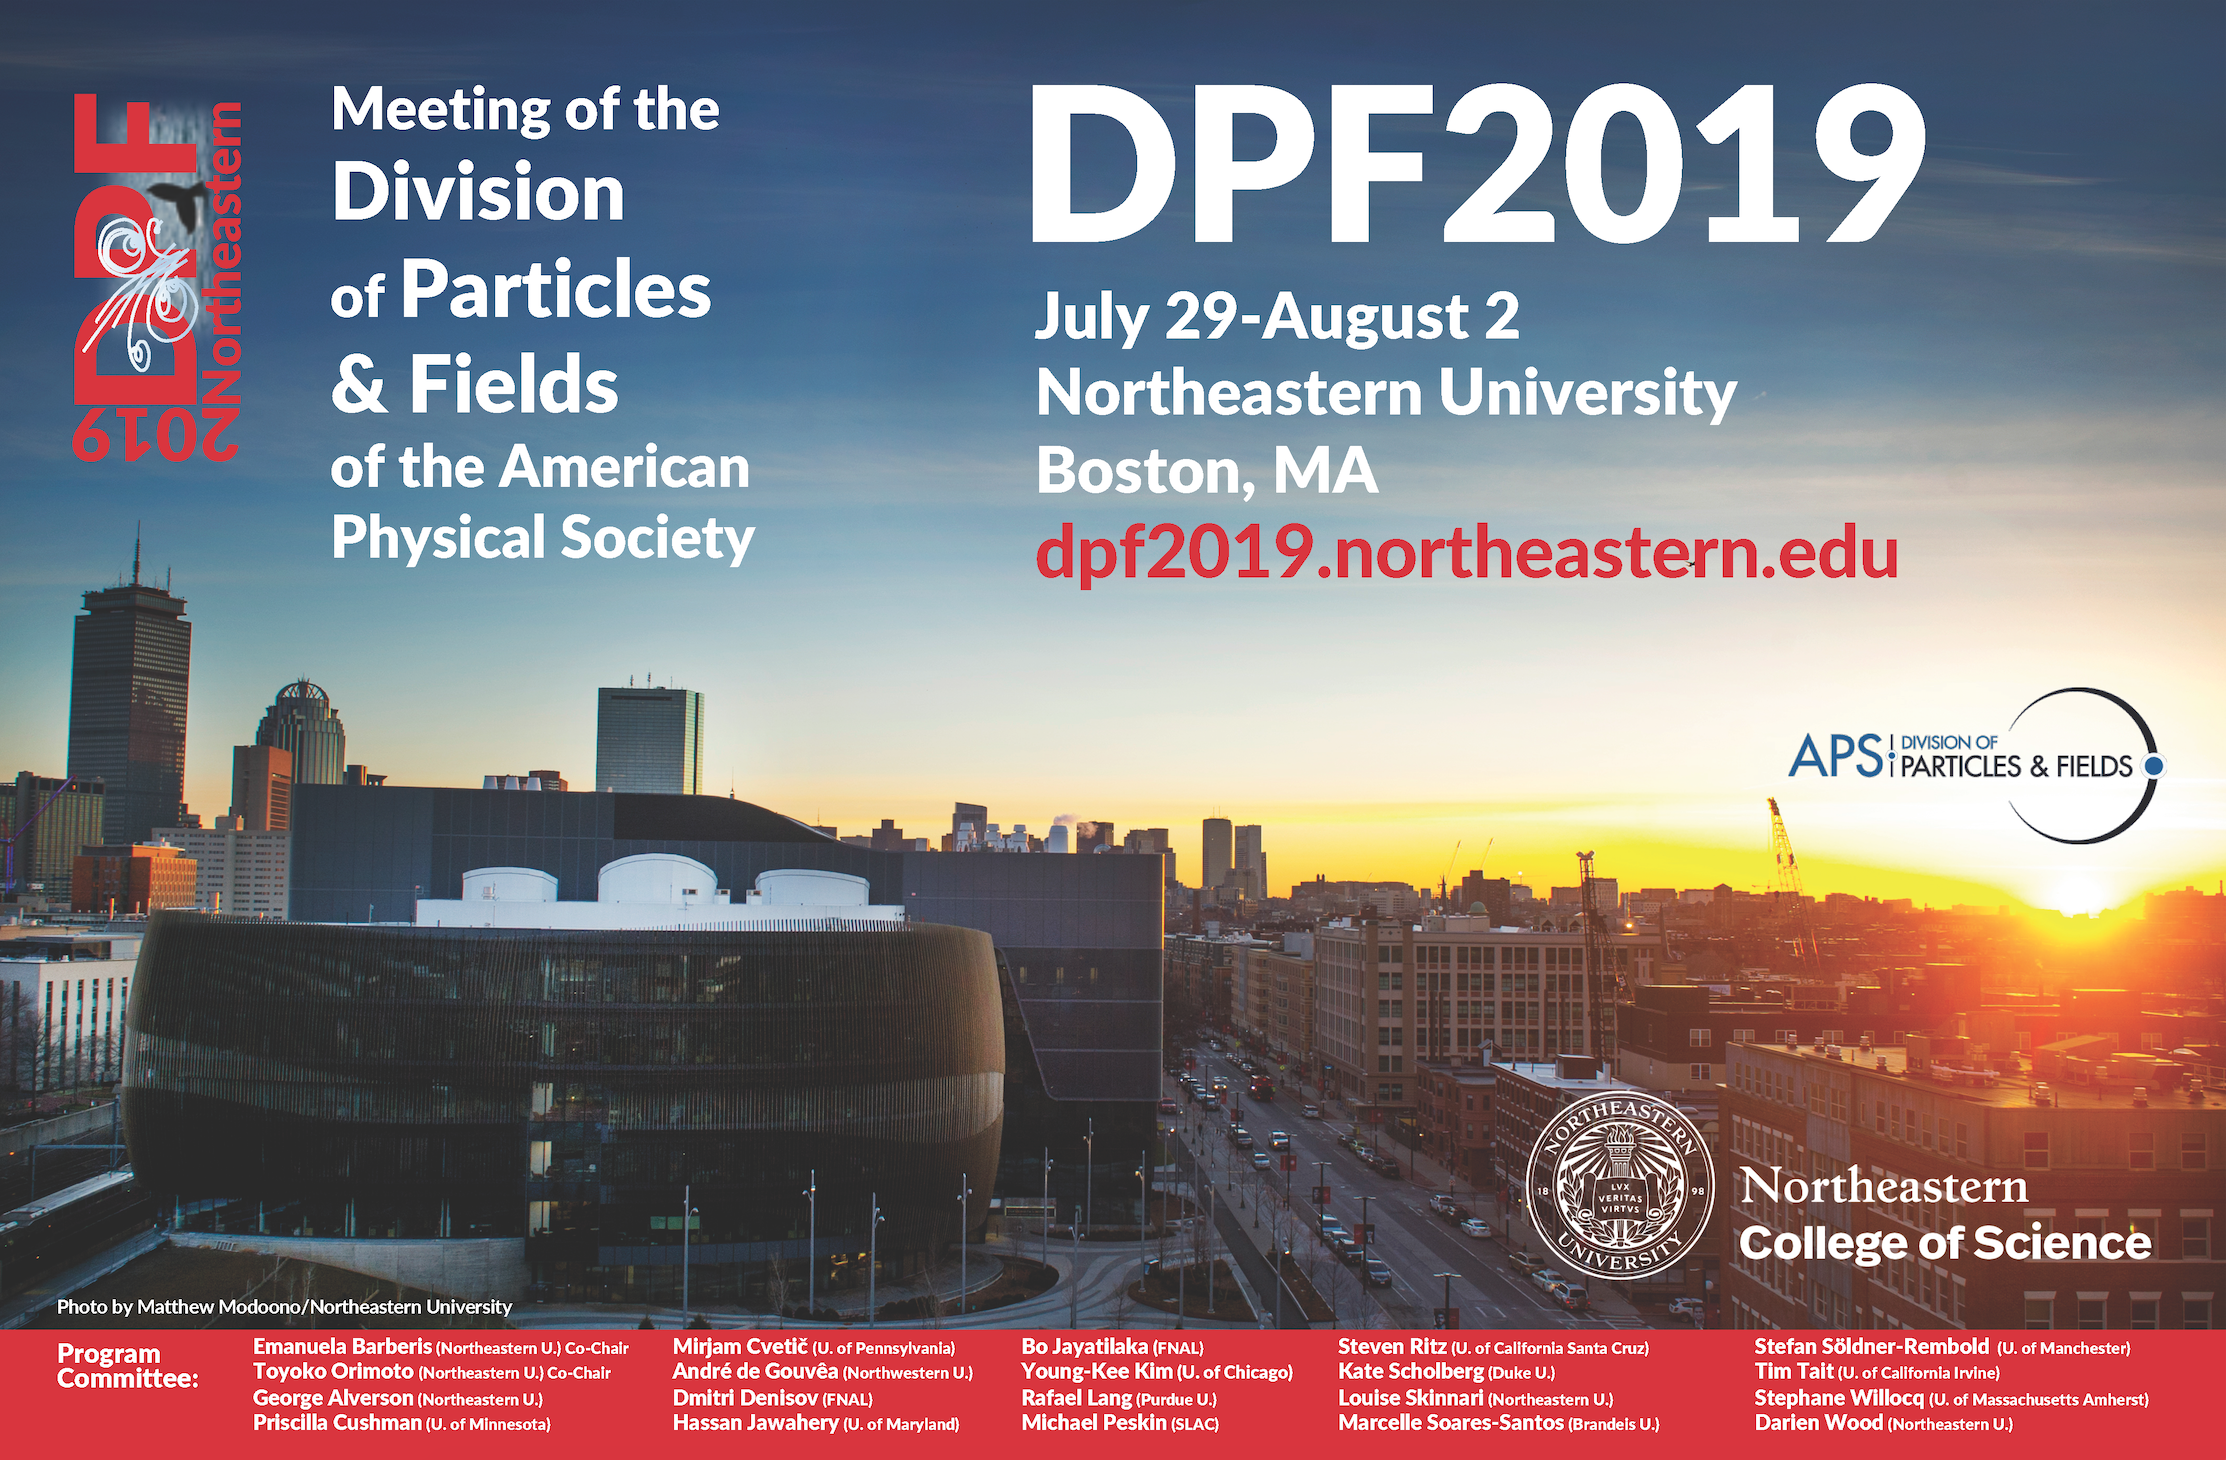 2019 Meeting of the Division of Particles & Fields of the